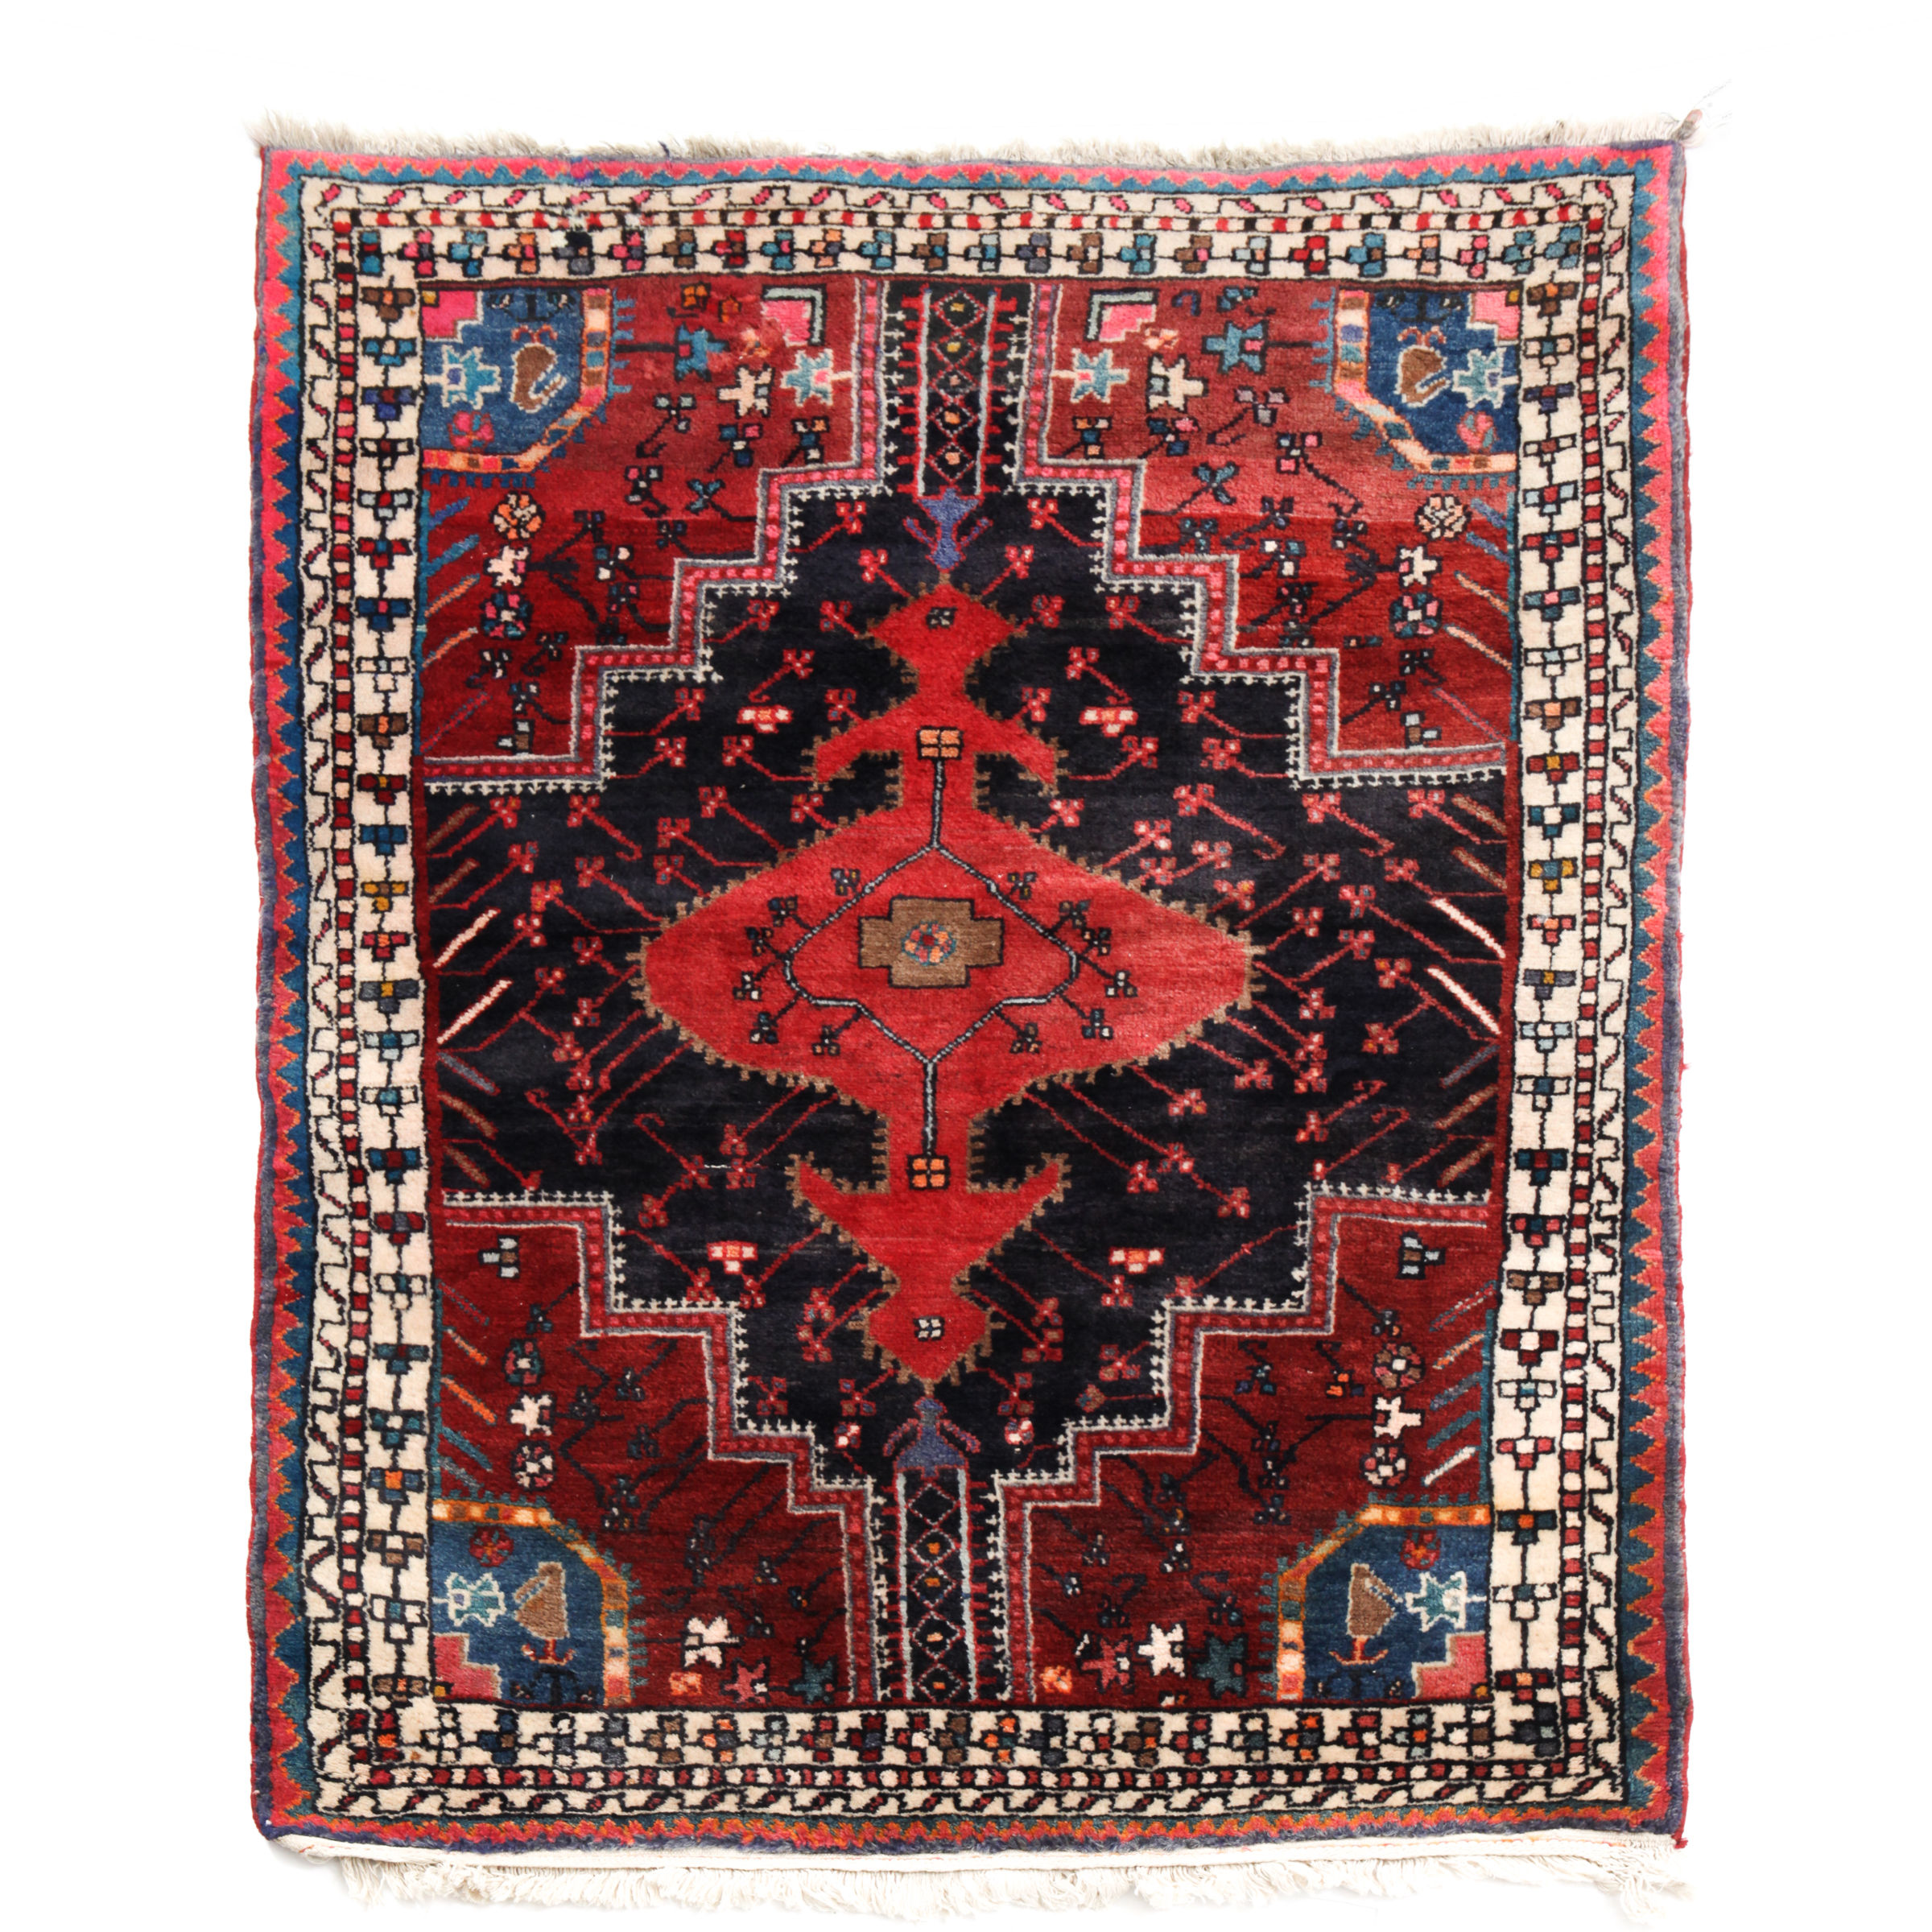 Hamadan Rug, Persian, mid 20th century